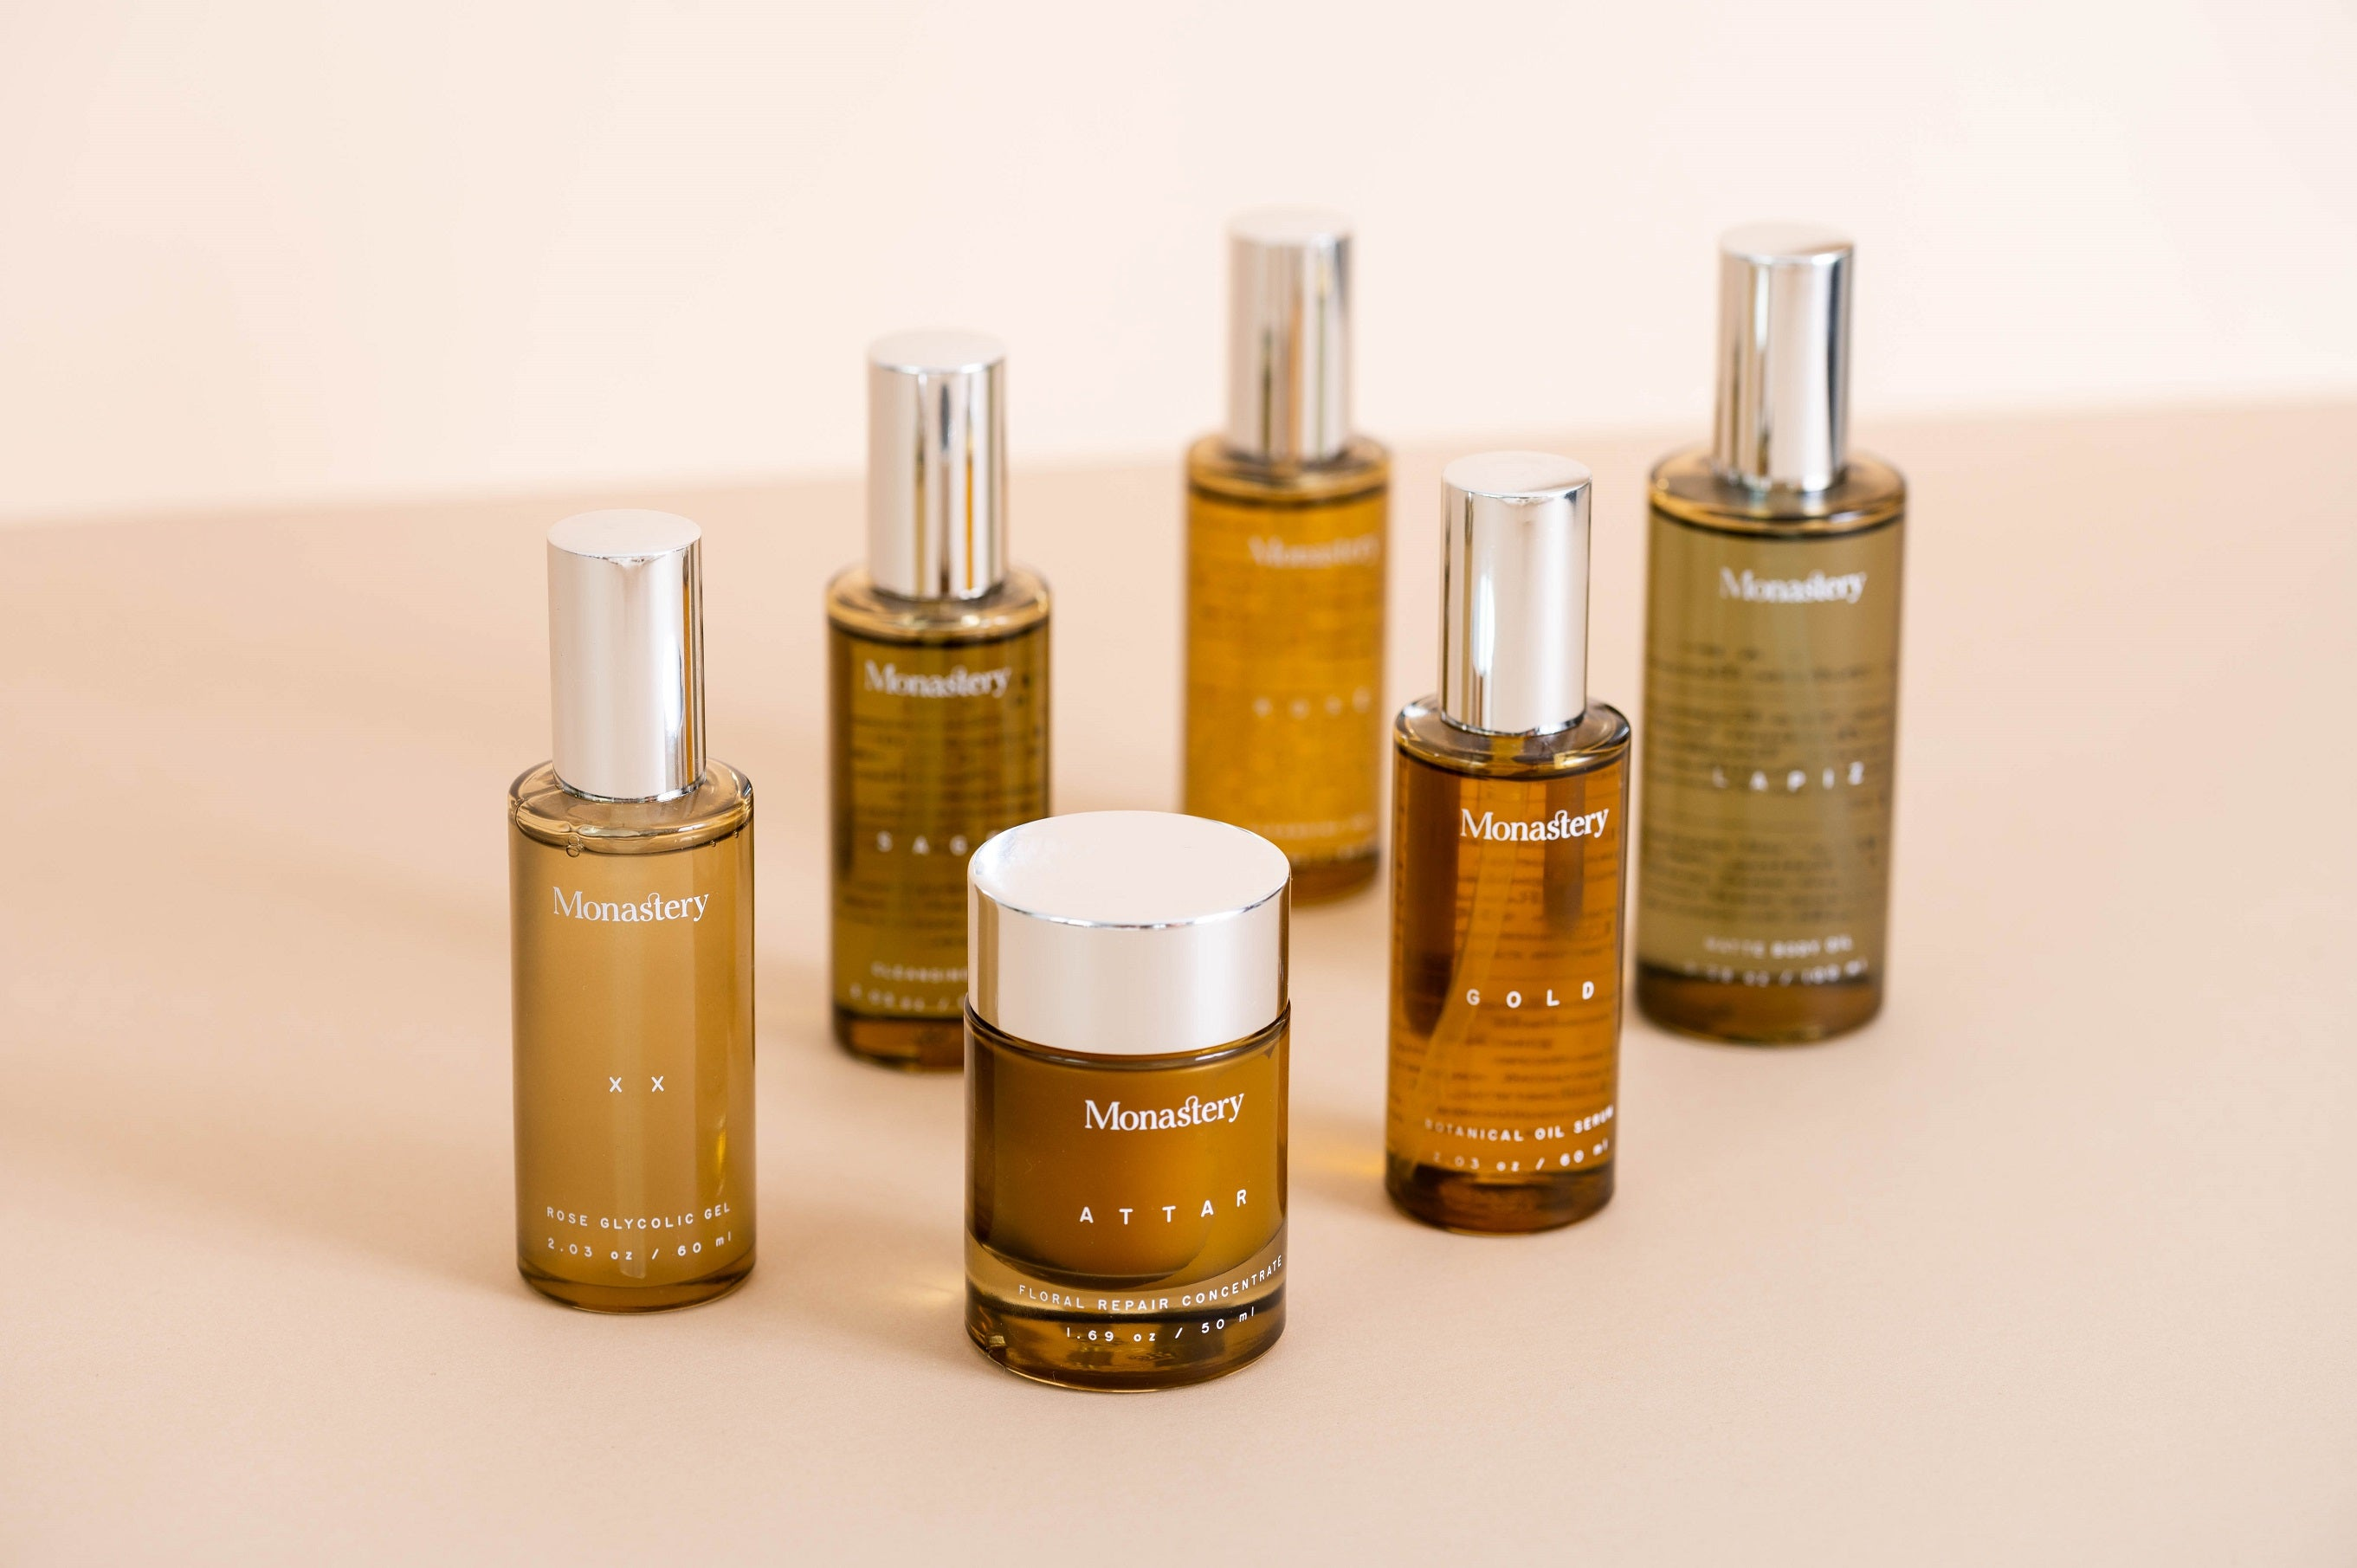 monastery made skincare products luxury bottles available at nourish clean beauty